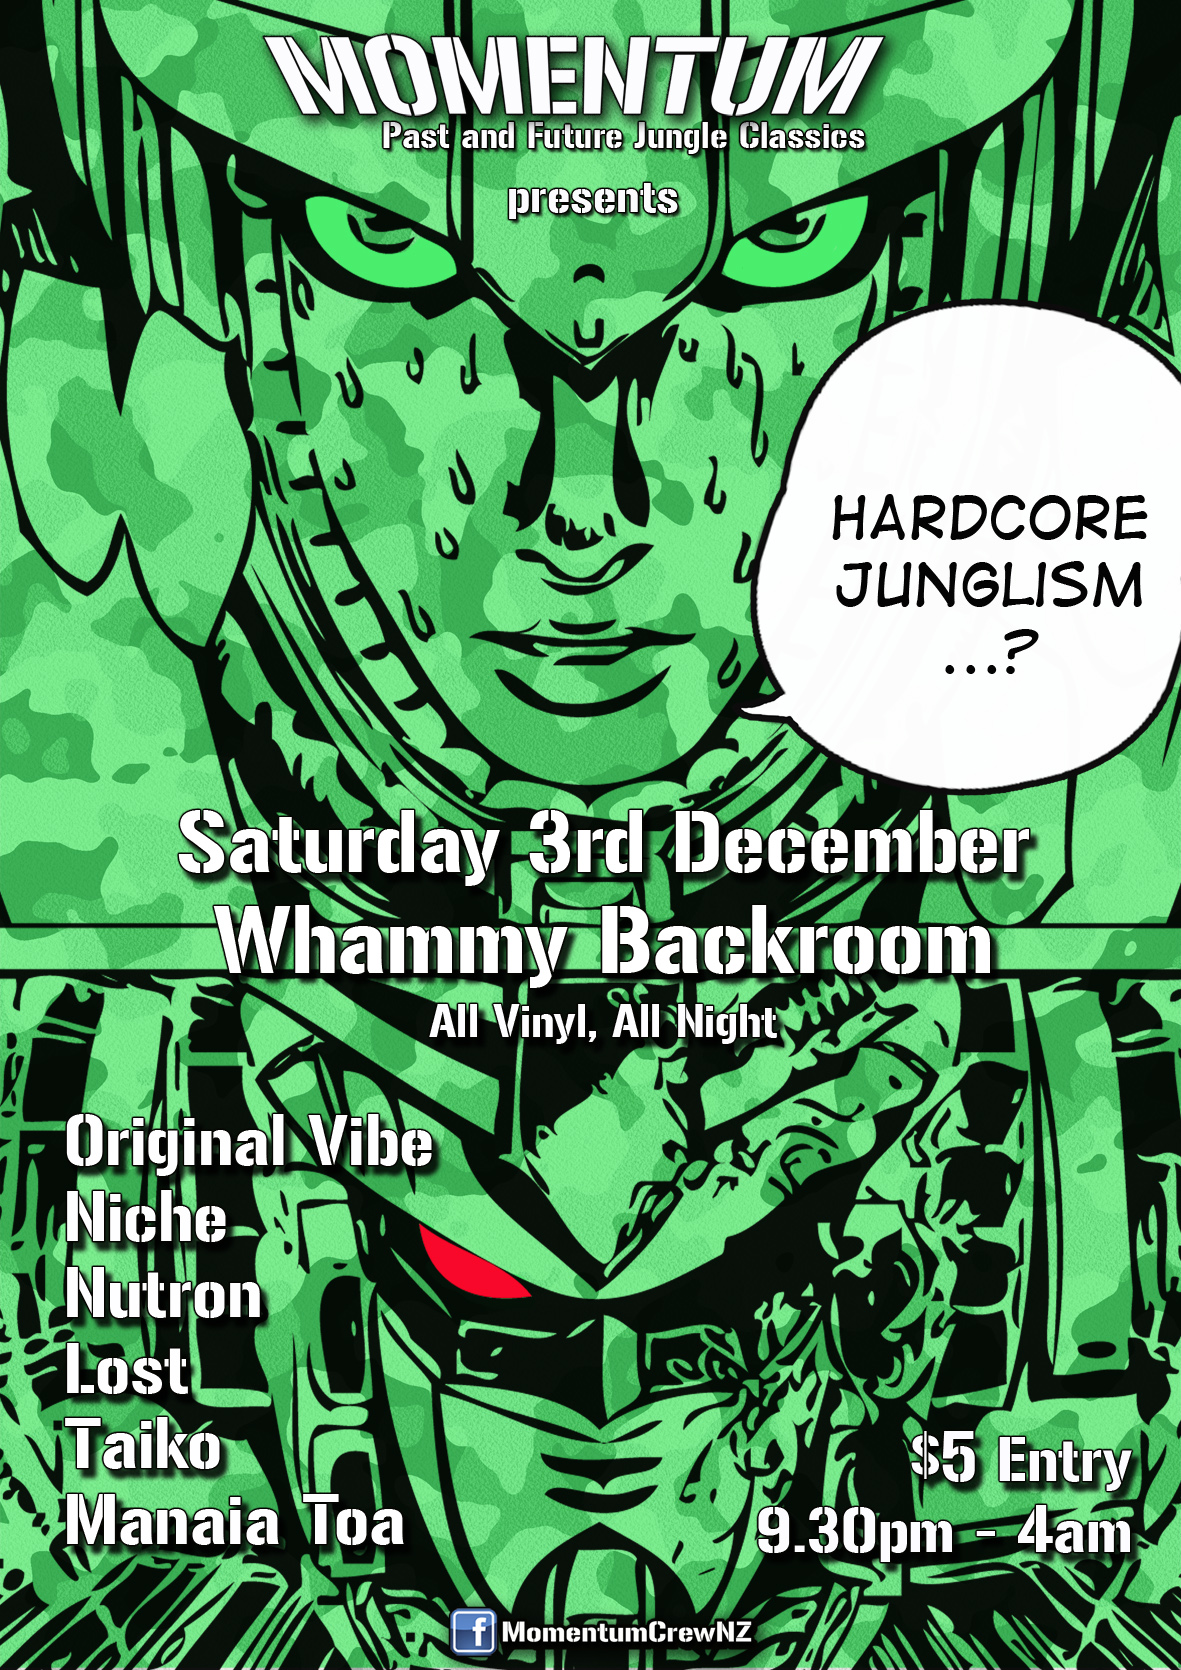 Hardcore Junglism Saturday Dec 3, Whammy Backroom, Auckland